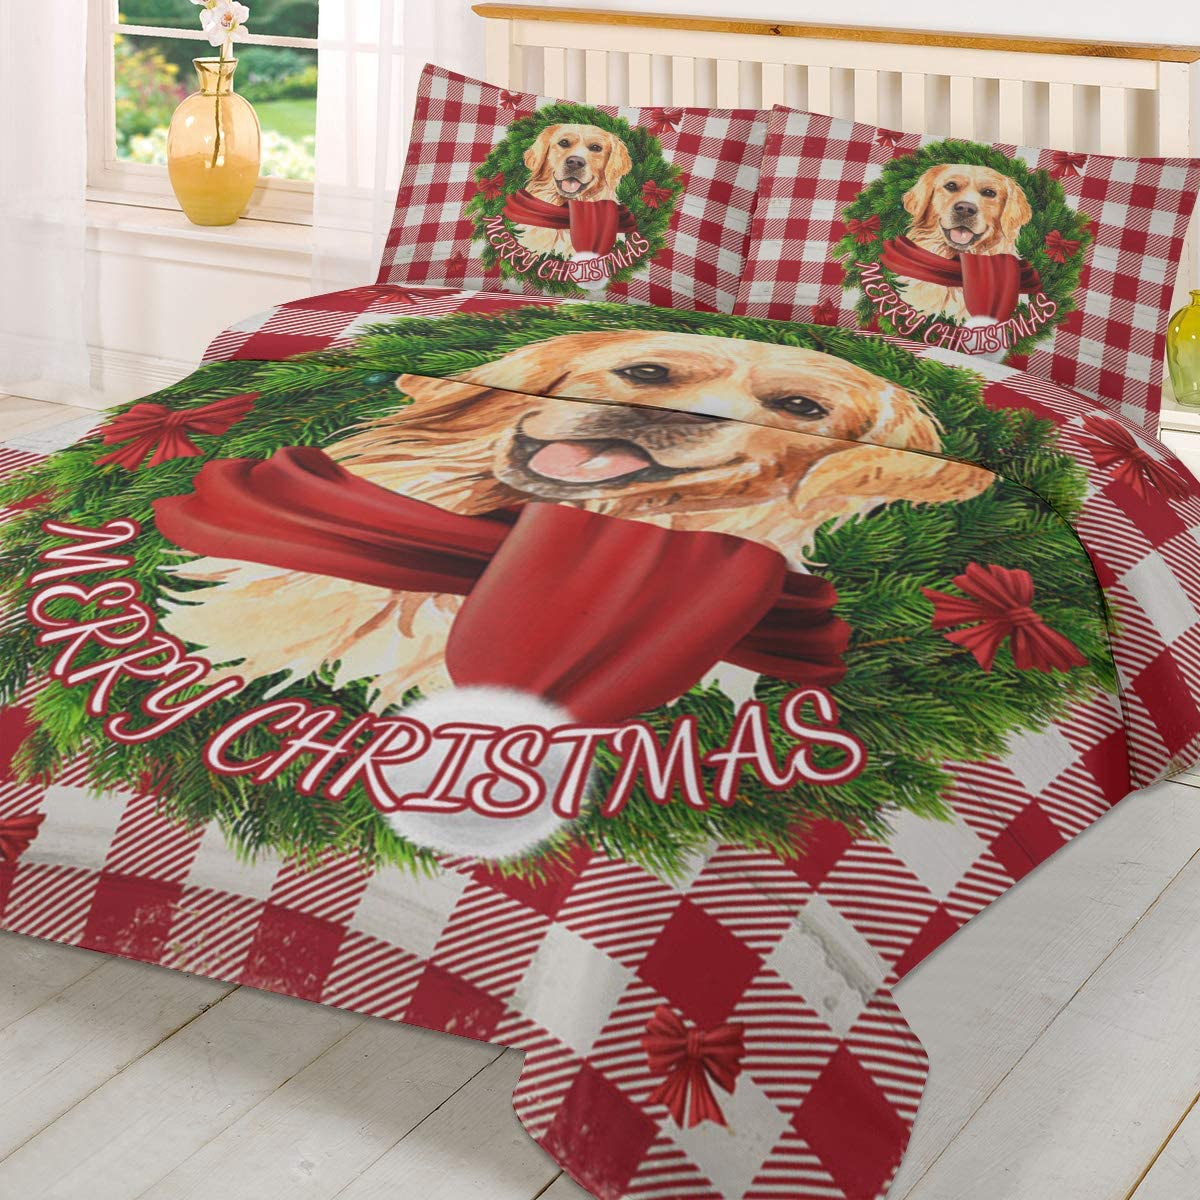 Merry Christmas 3 Piece Duvet Cover Set King Size Ultra Soft Breathable Washed Polyester Quilt Cover with Zipper Closure and Corner Ties Set Golden Retriever Dog Buffalo Check Plaid